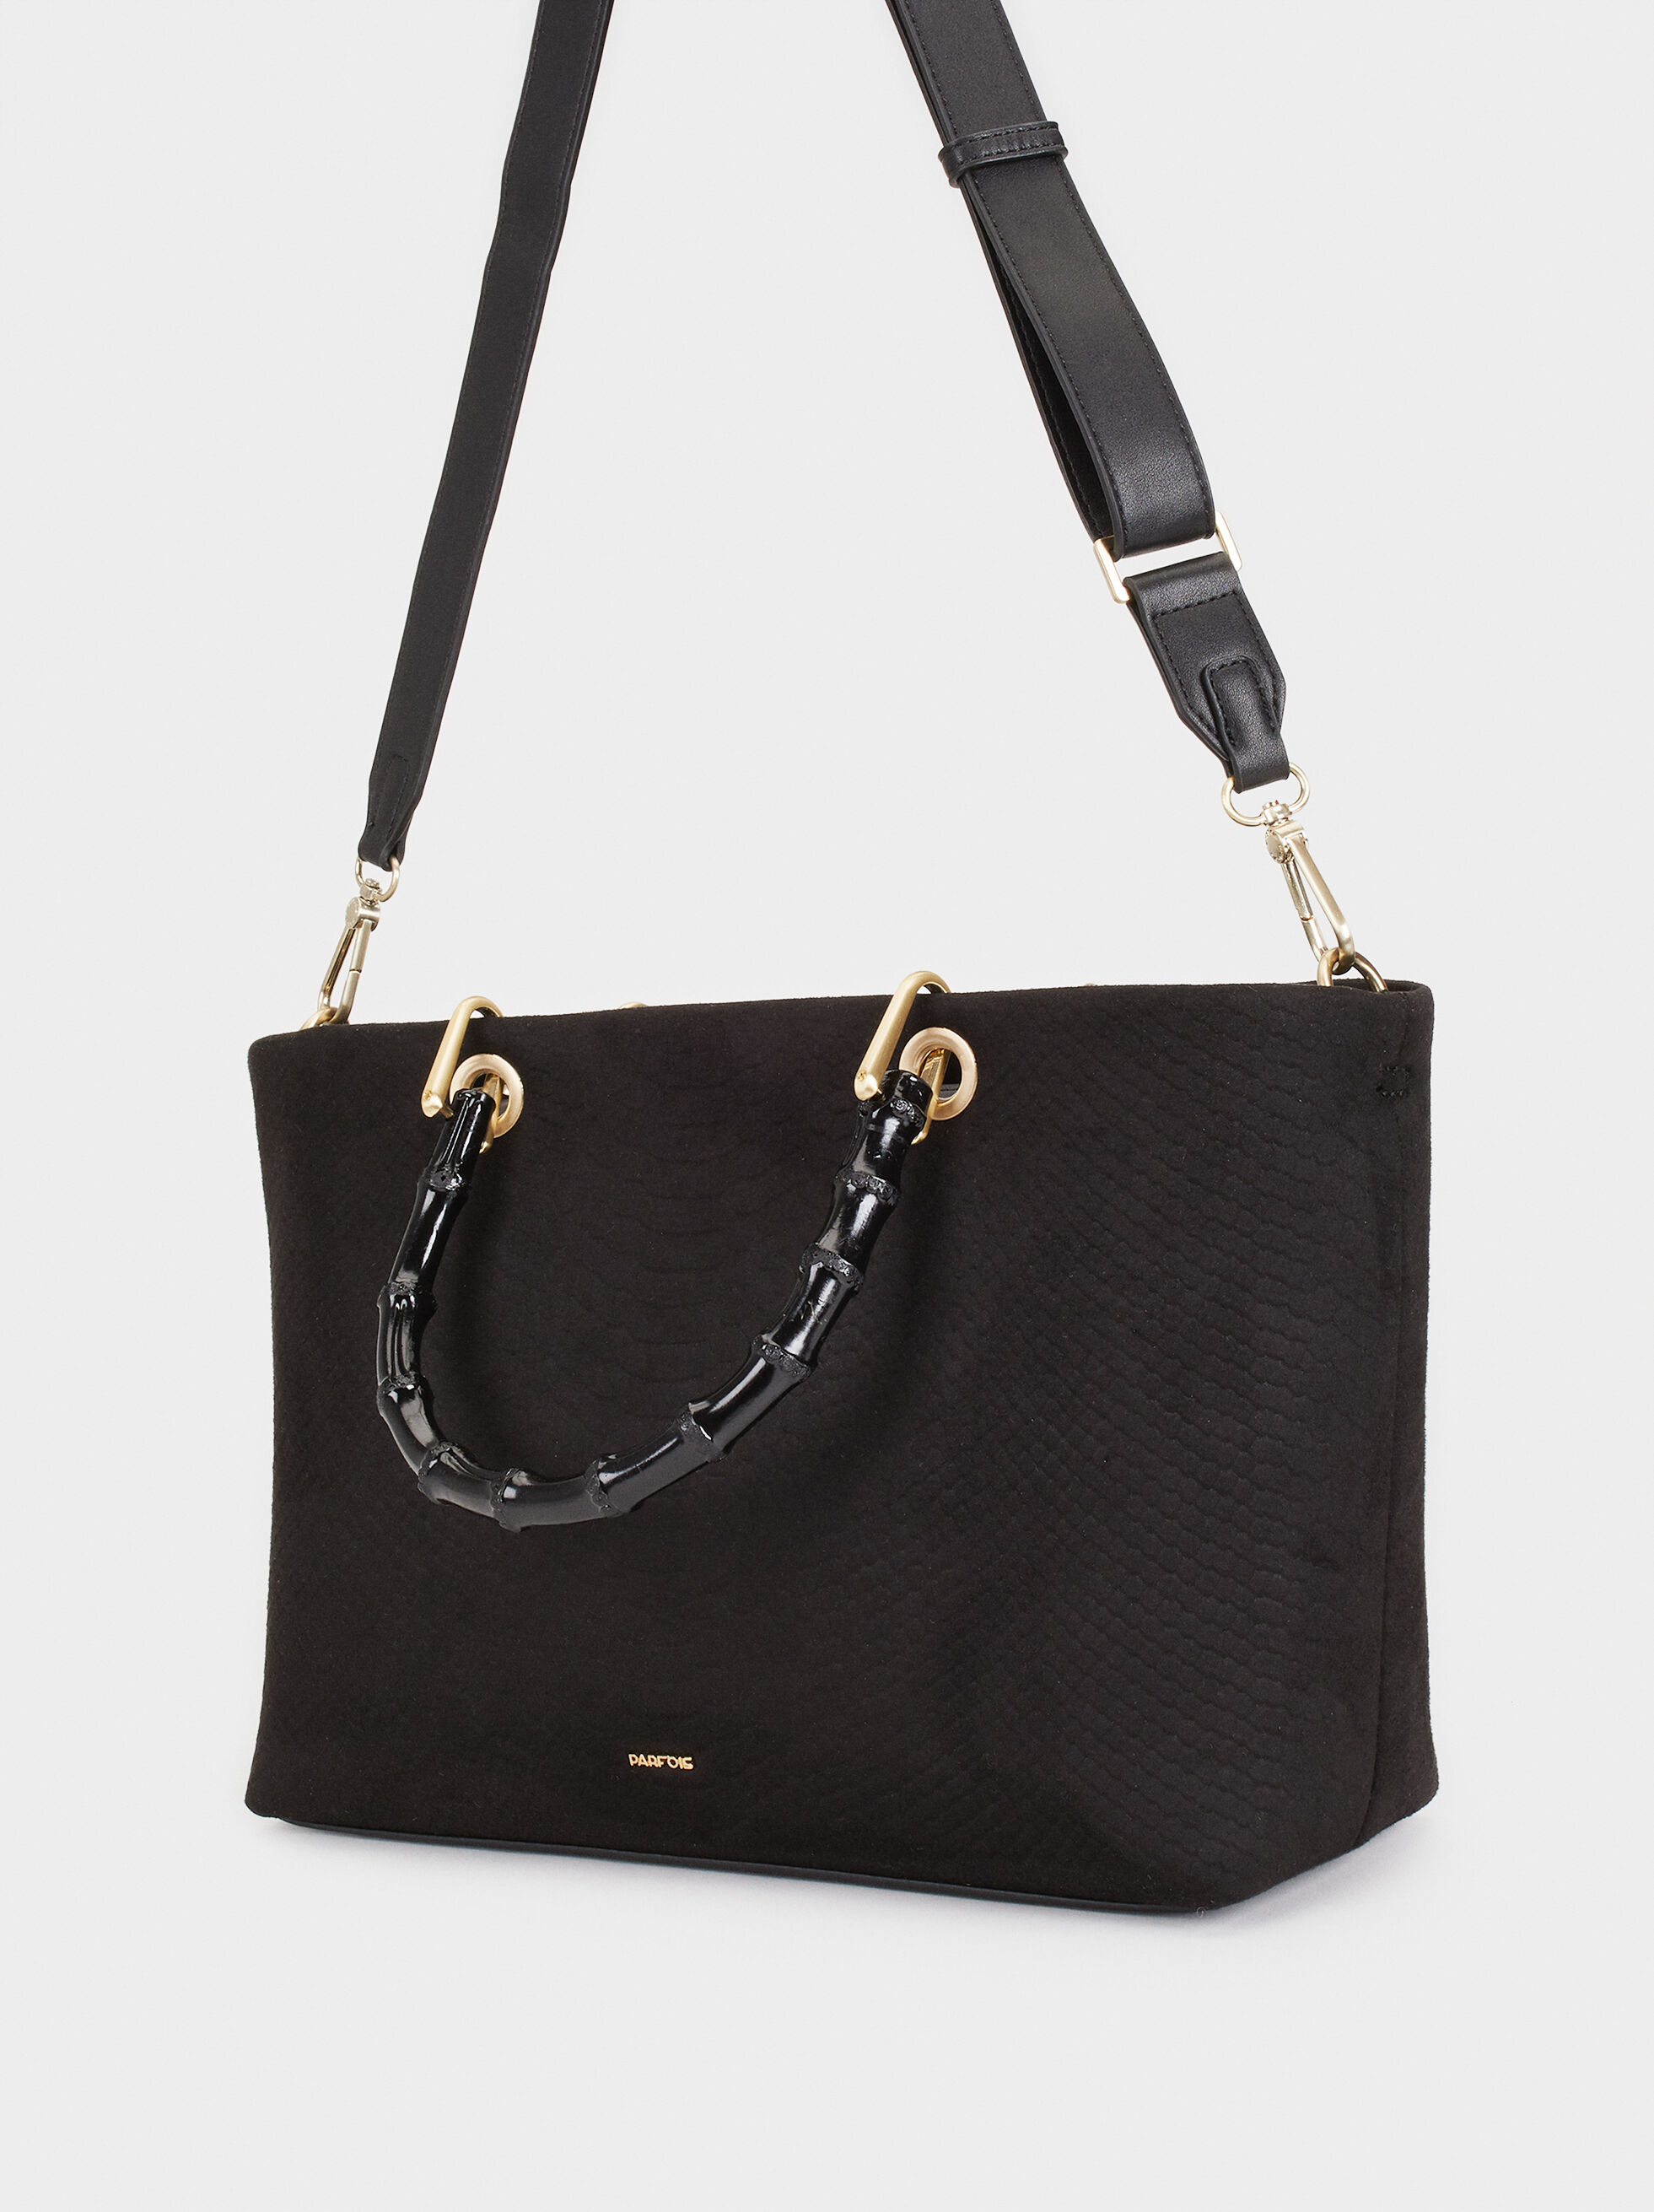 Tote Bag With Bamboo Handle, Black, hi-res